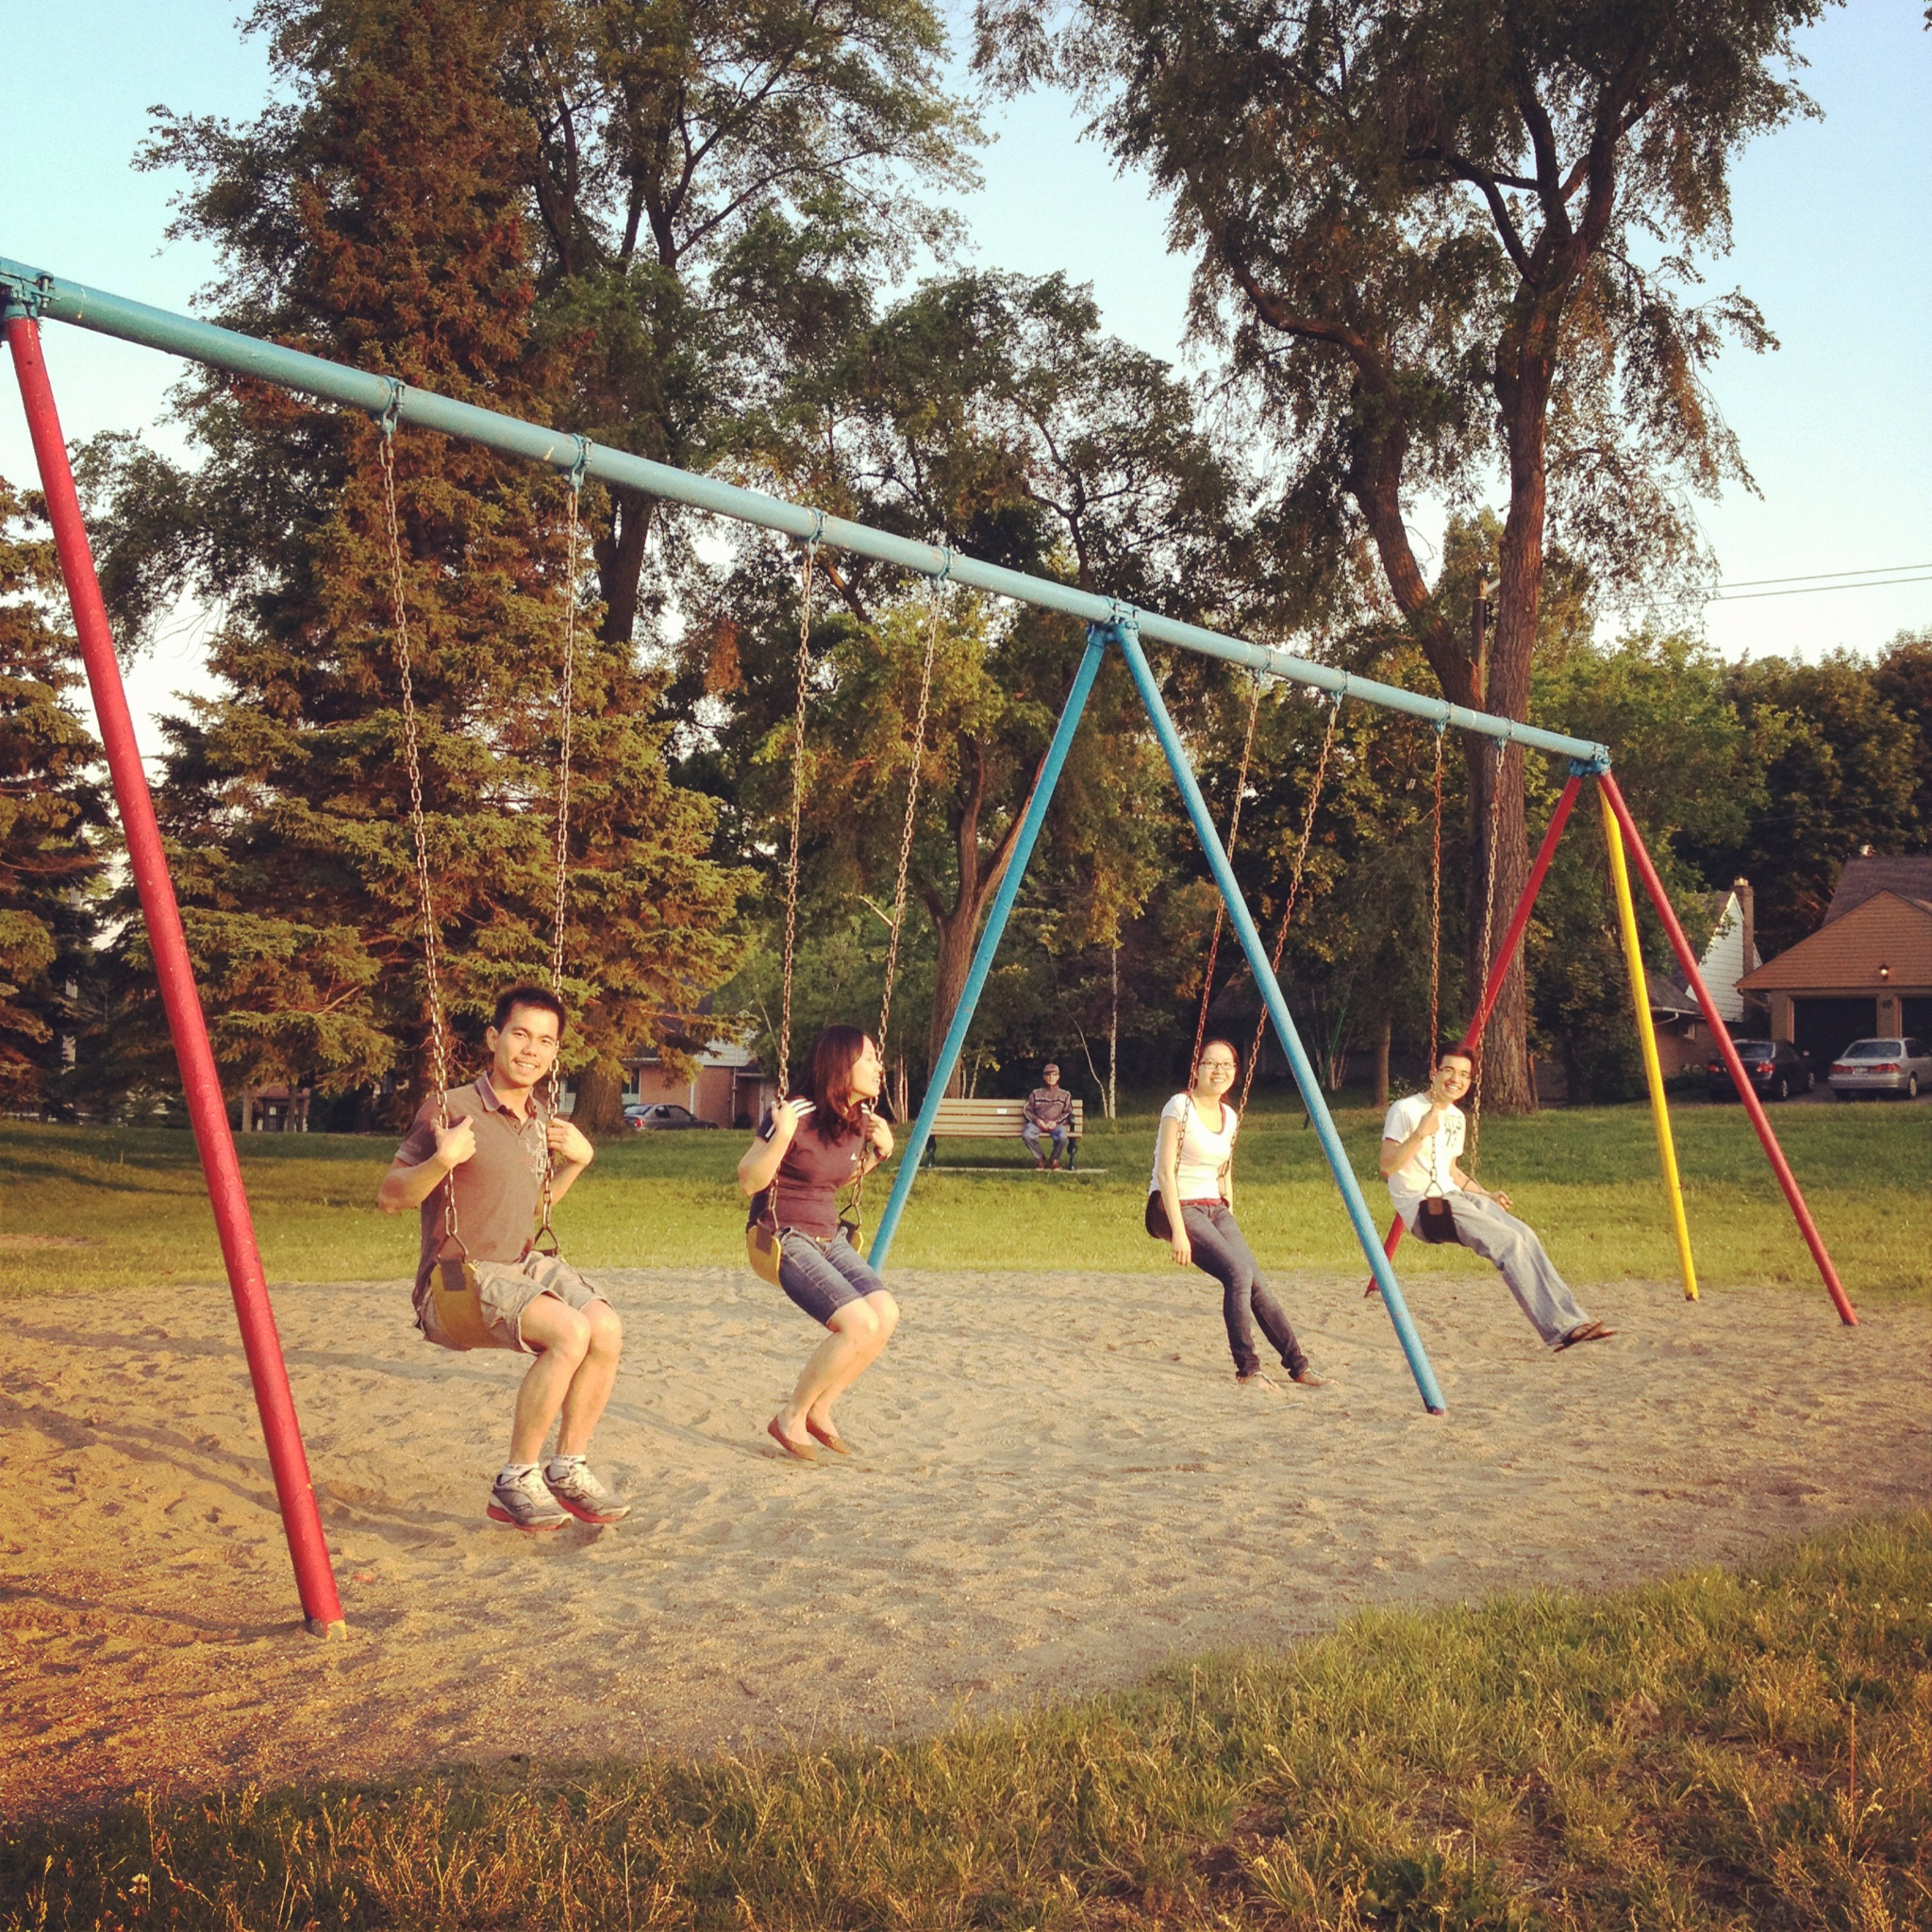 Went to Park near our Apartment with friends. June 09,2012. Etobicoke, Canada